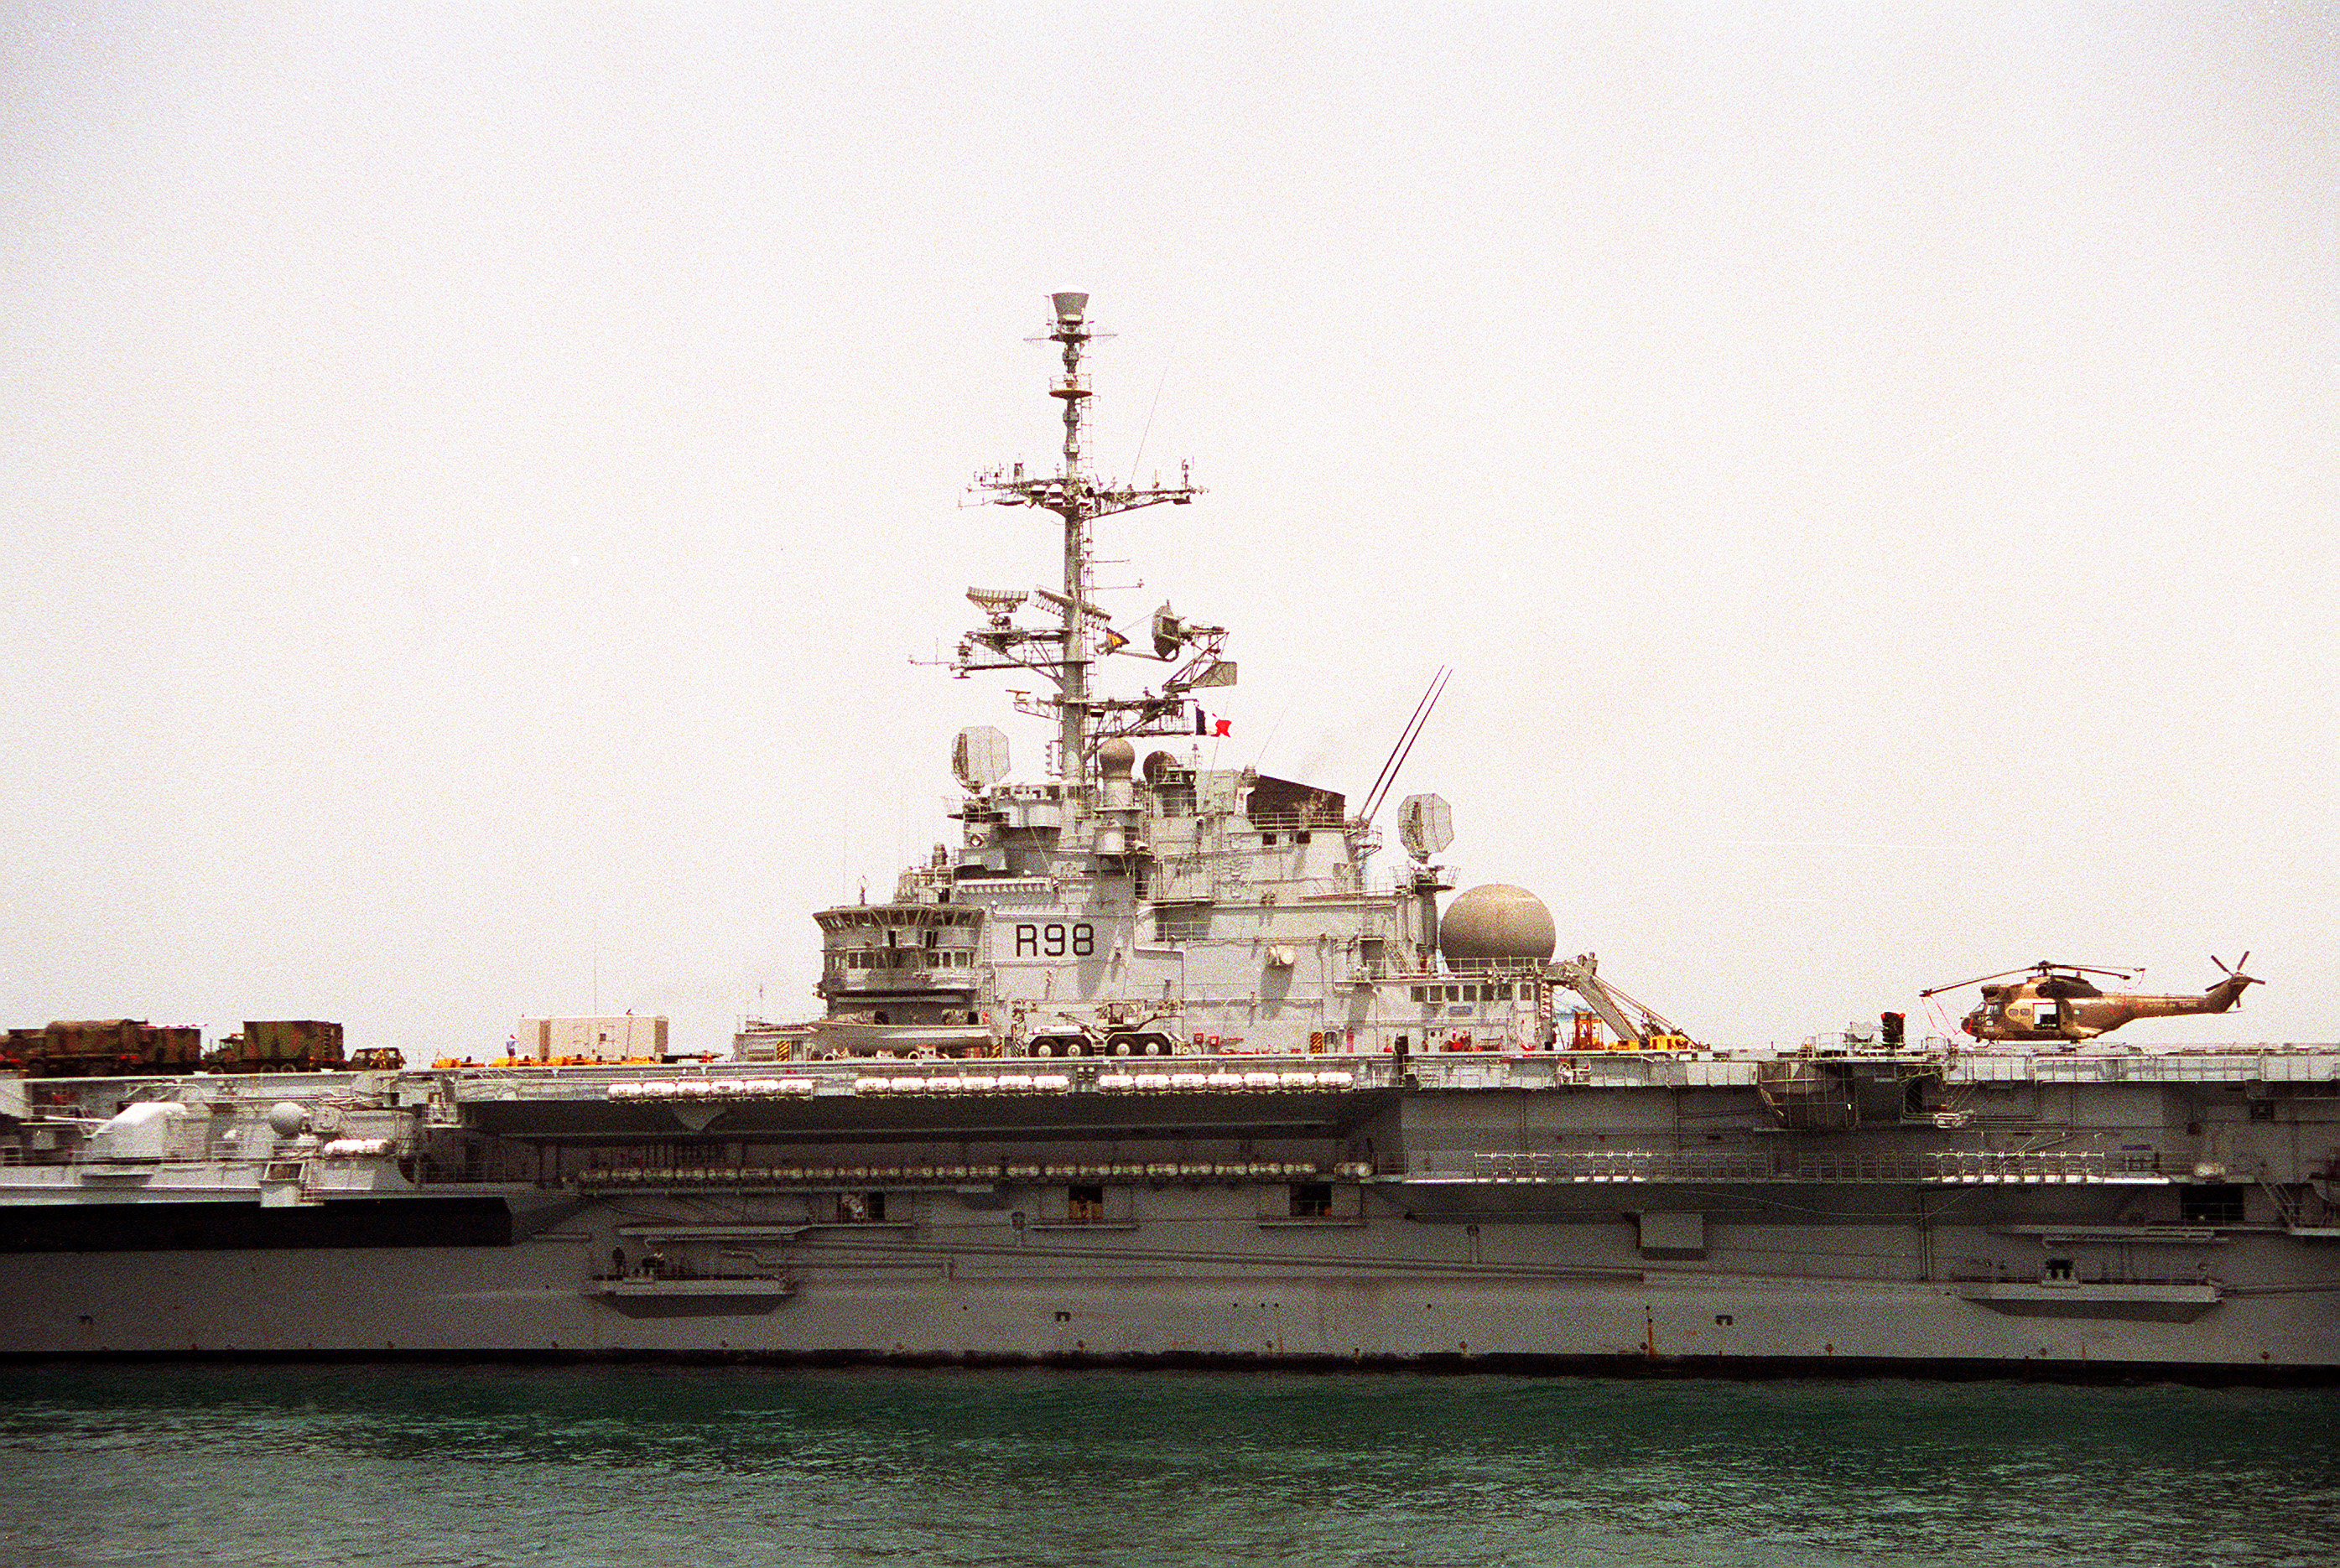 File:French aircraft carrier FS Clemenceau (R-98).JPEG ...